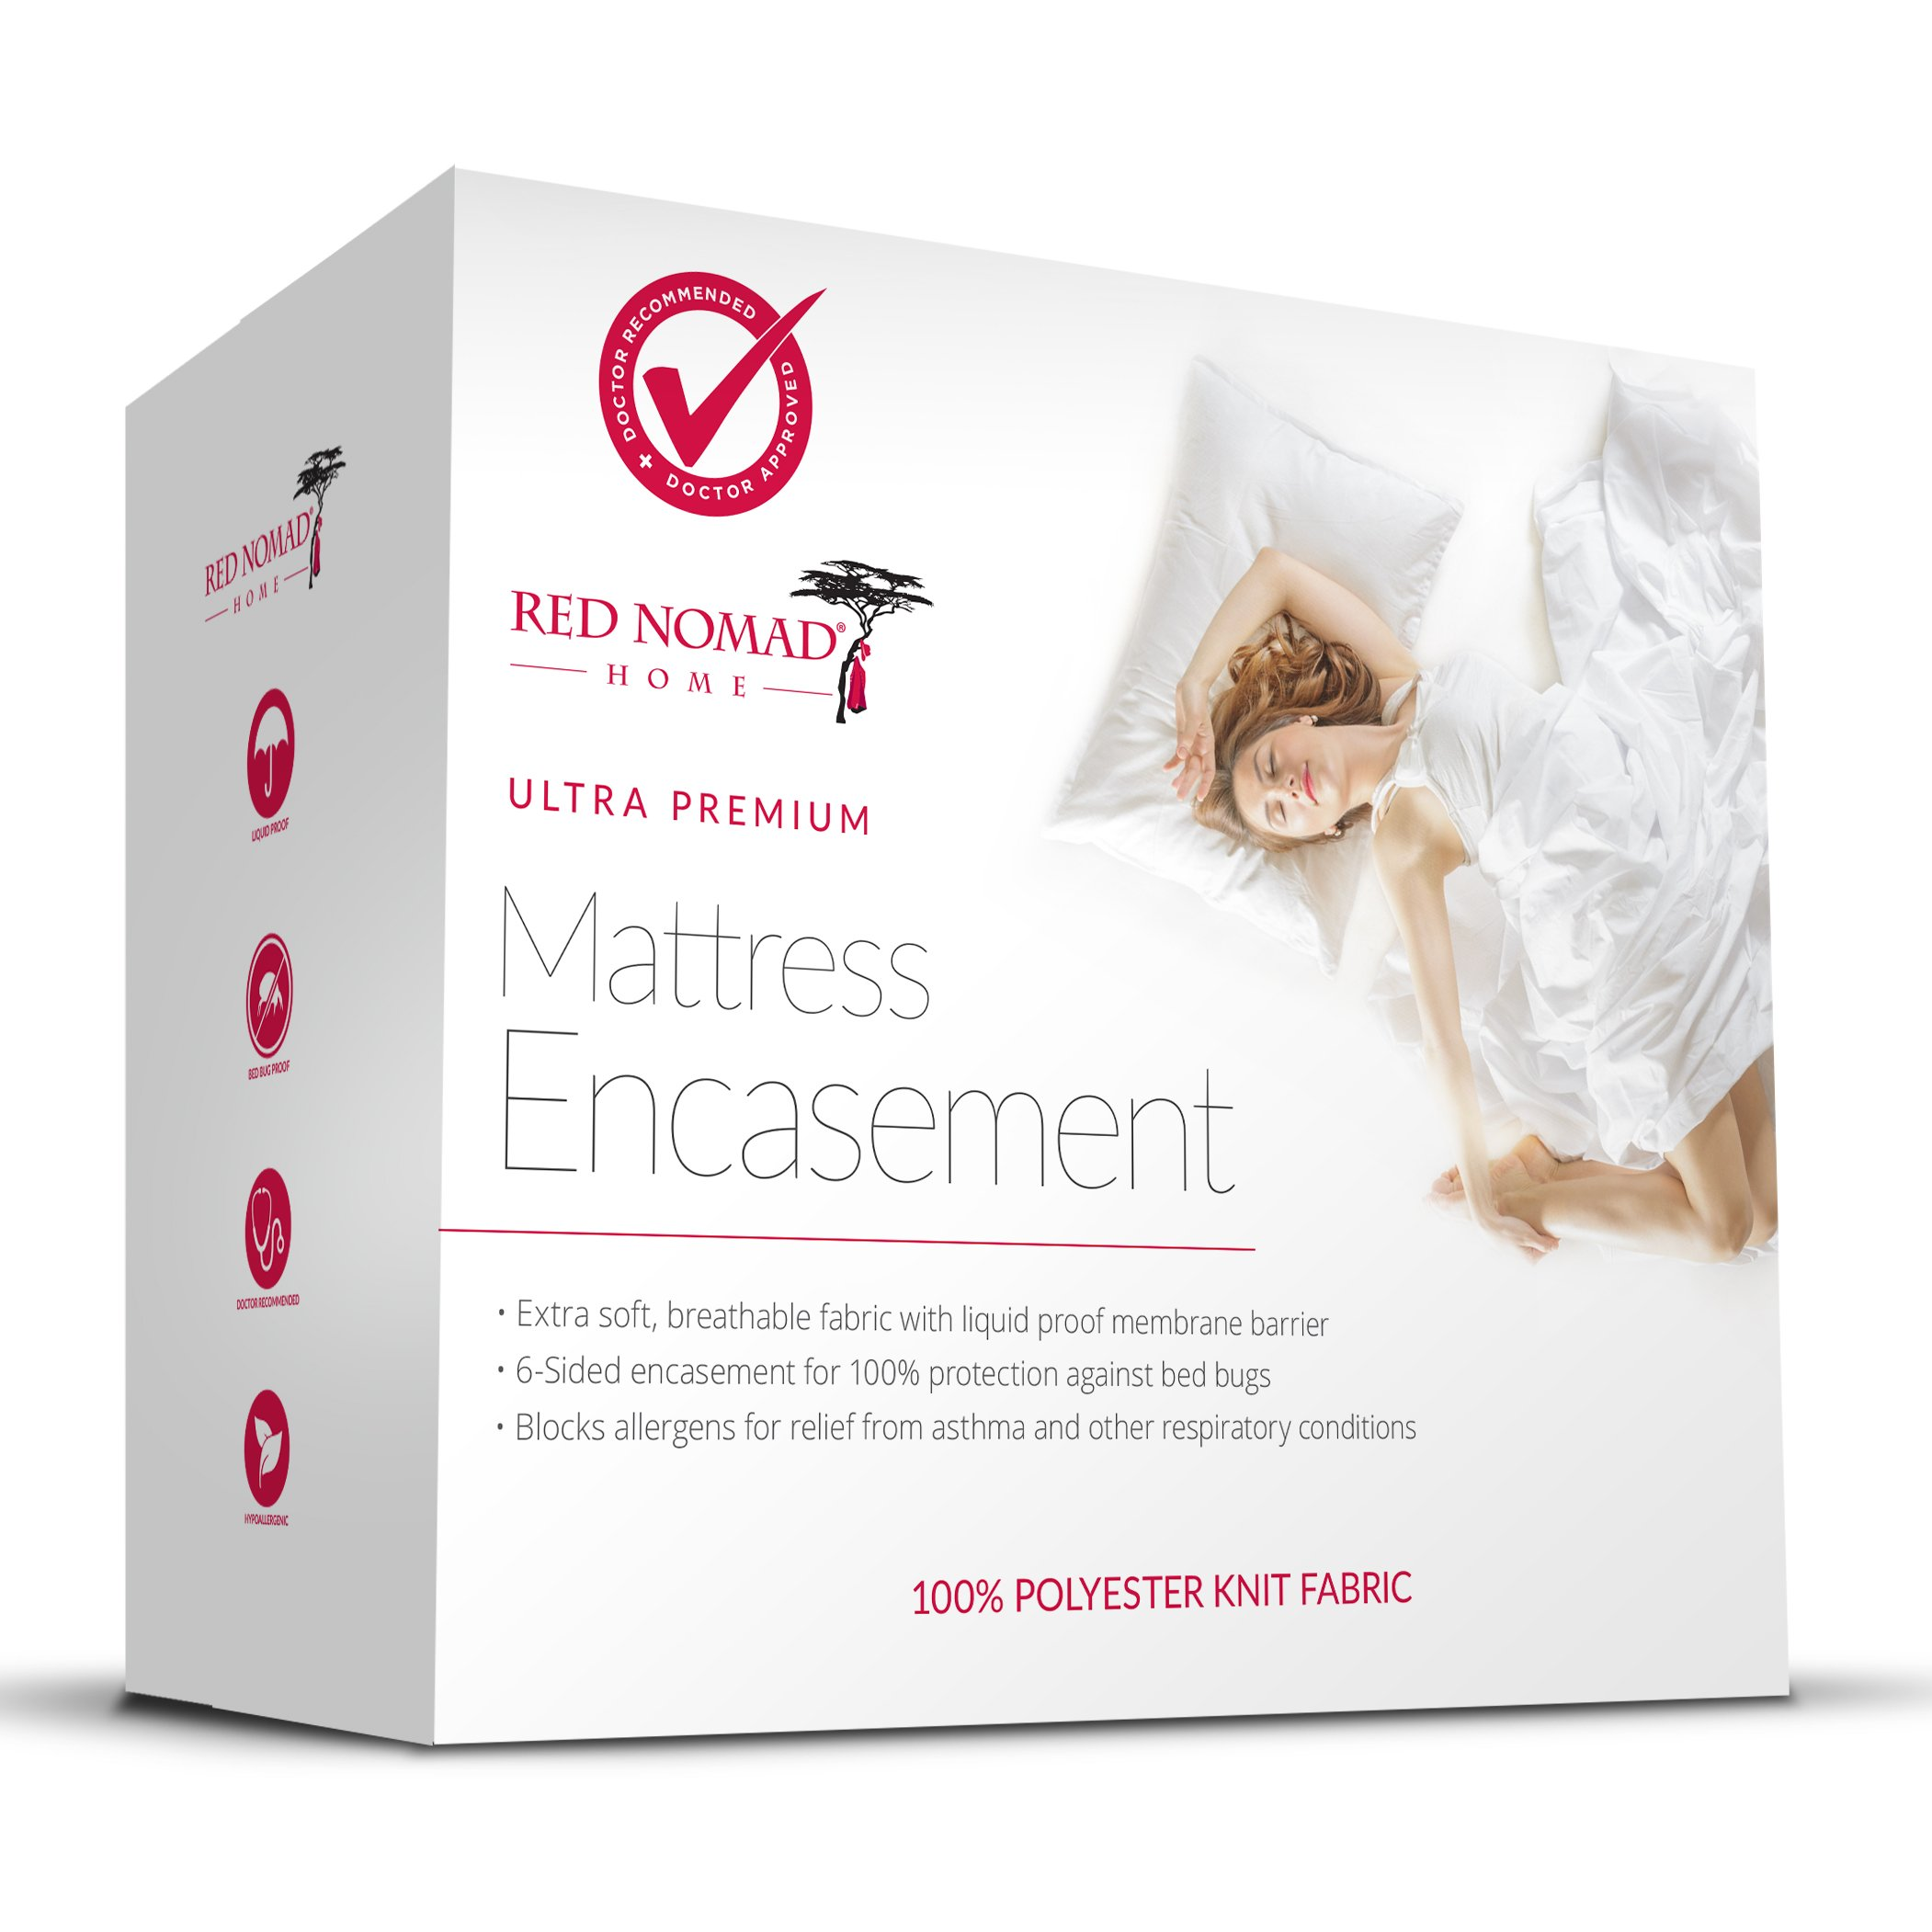 Red Nomad Waterproof Zippered Encasement Medical Grade Bed Bug Proof & Allergy Reduction Mattress Protector - King Size